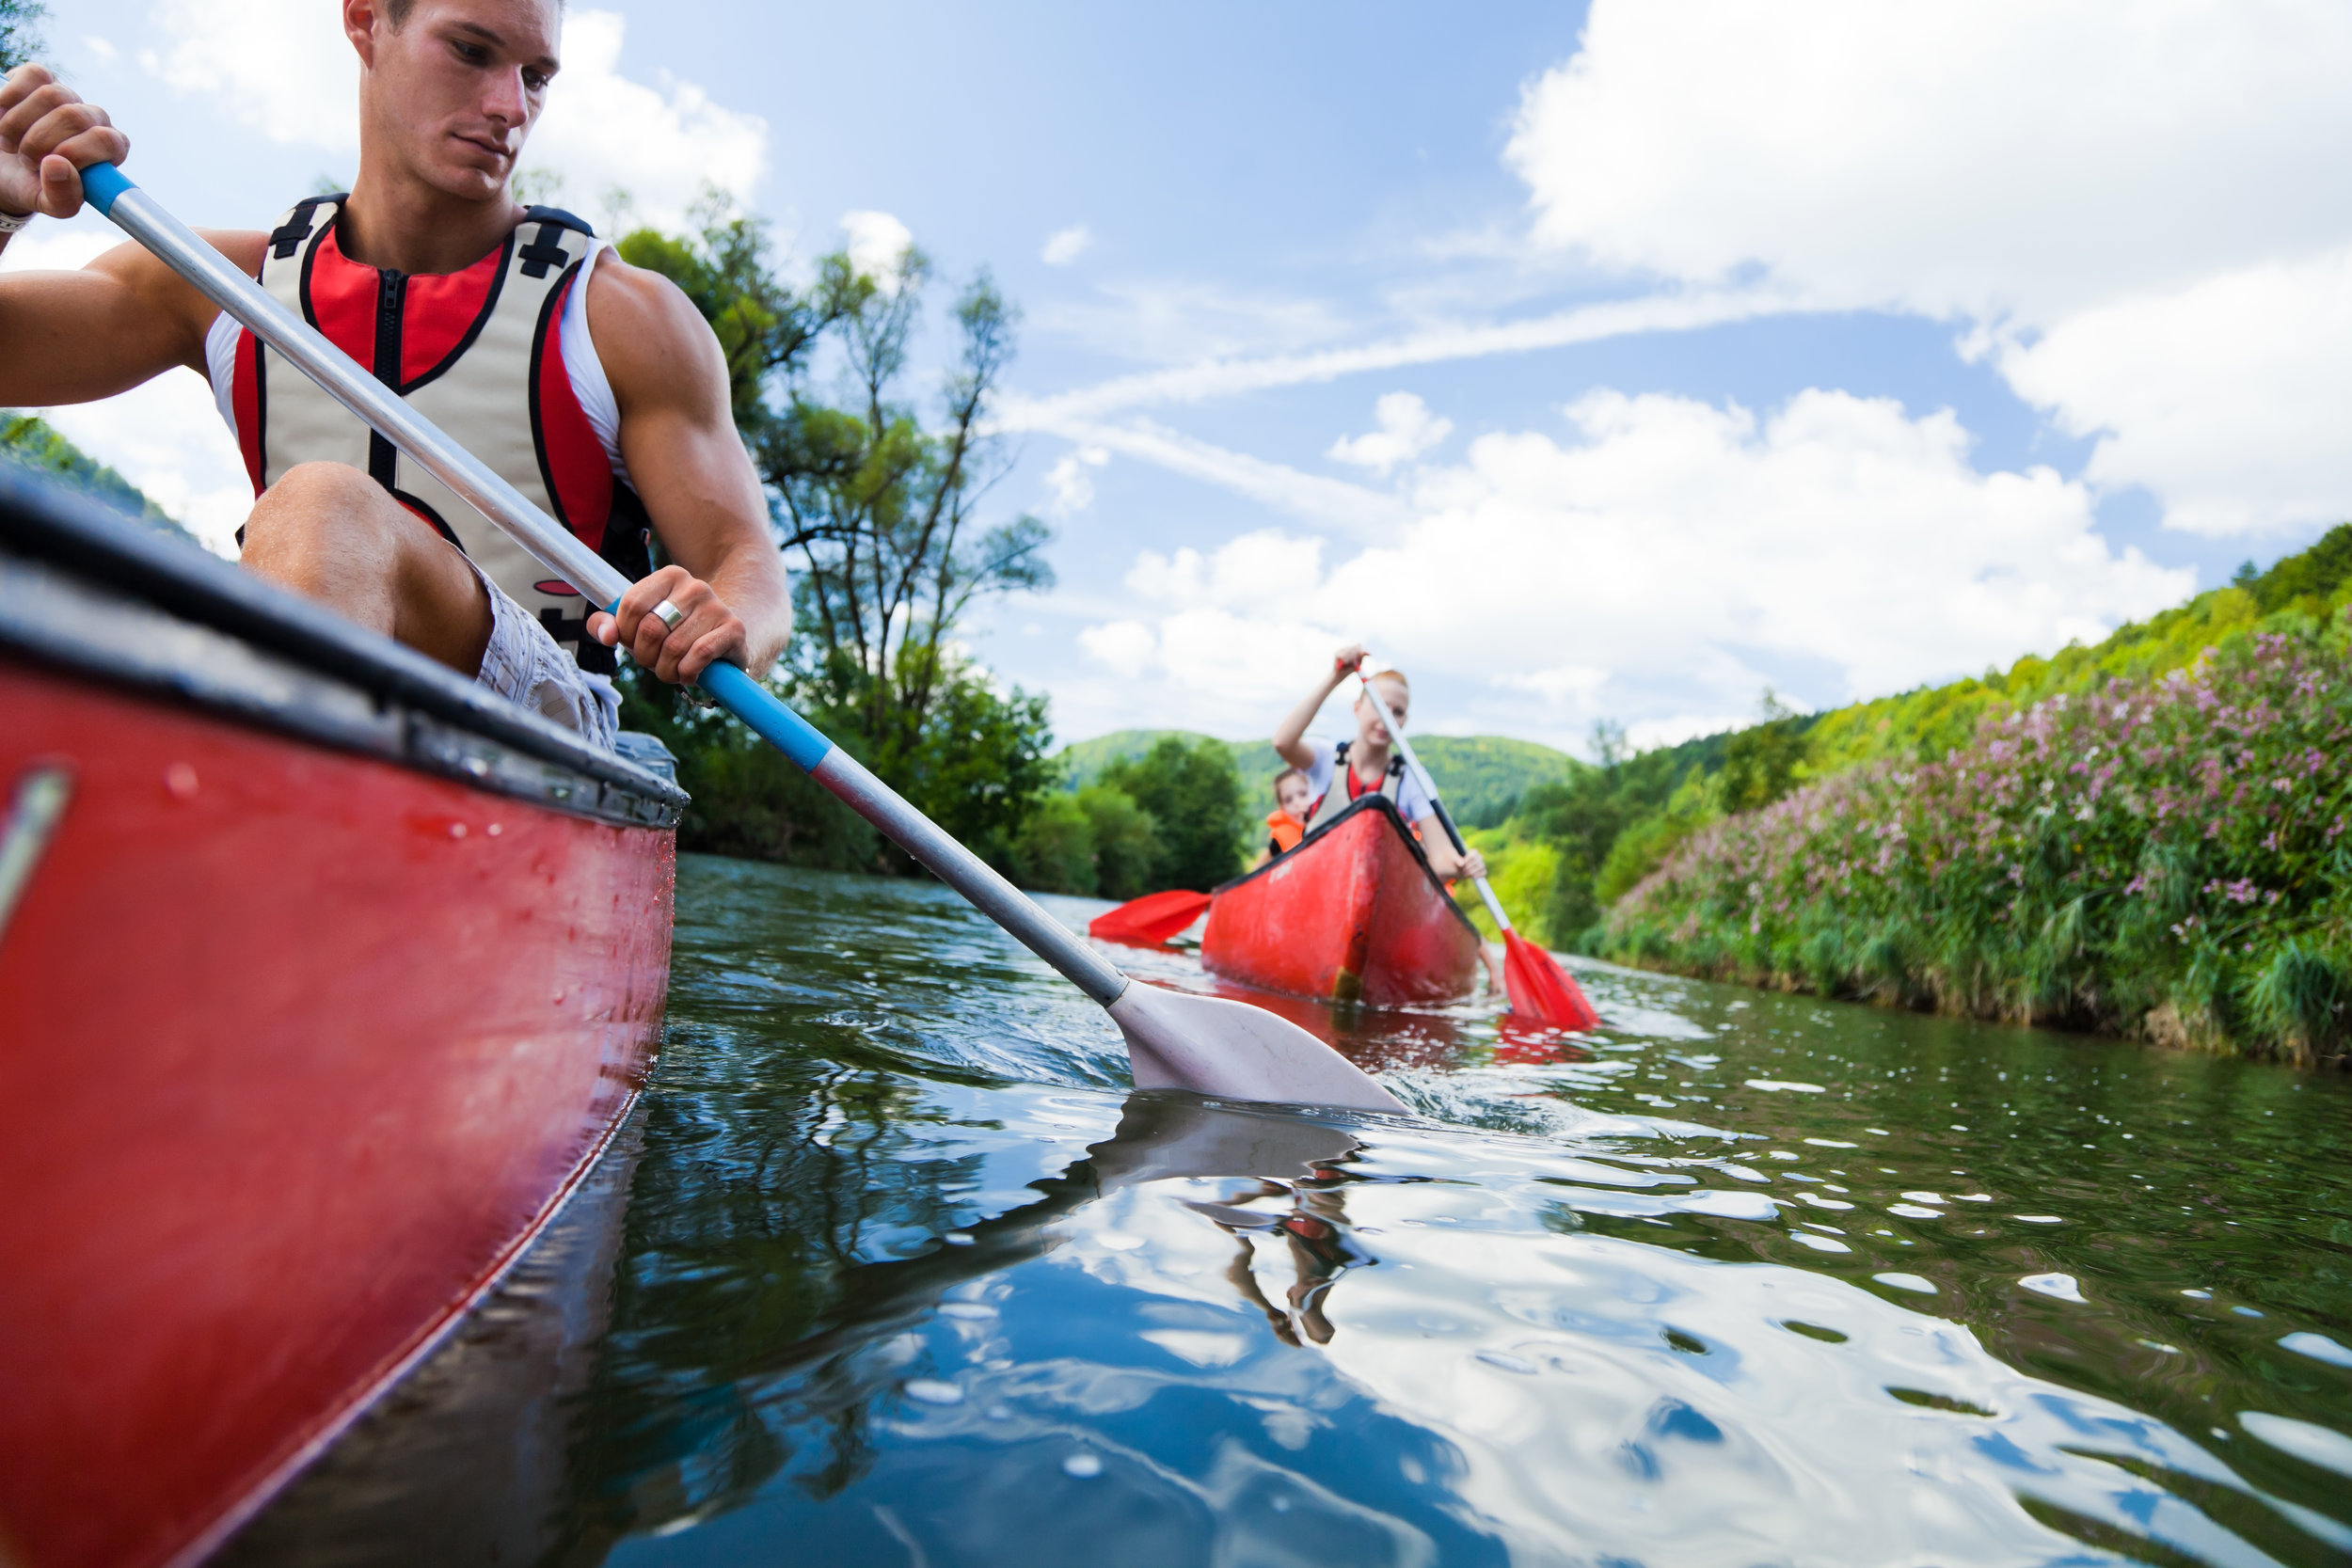 Three Essential Exercises to Excel in the Canoe and Kayak Legs - Build your strength and stability through weight training while spending adequate time practicing the skills of your sport.